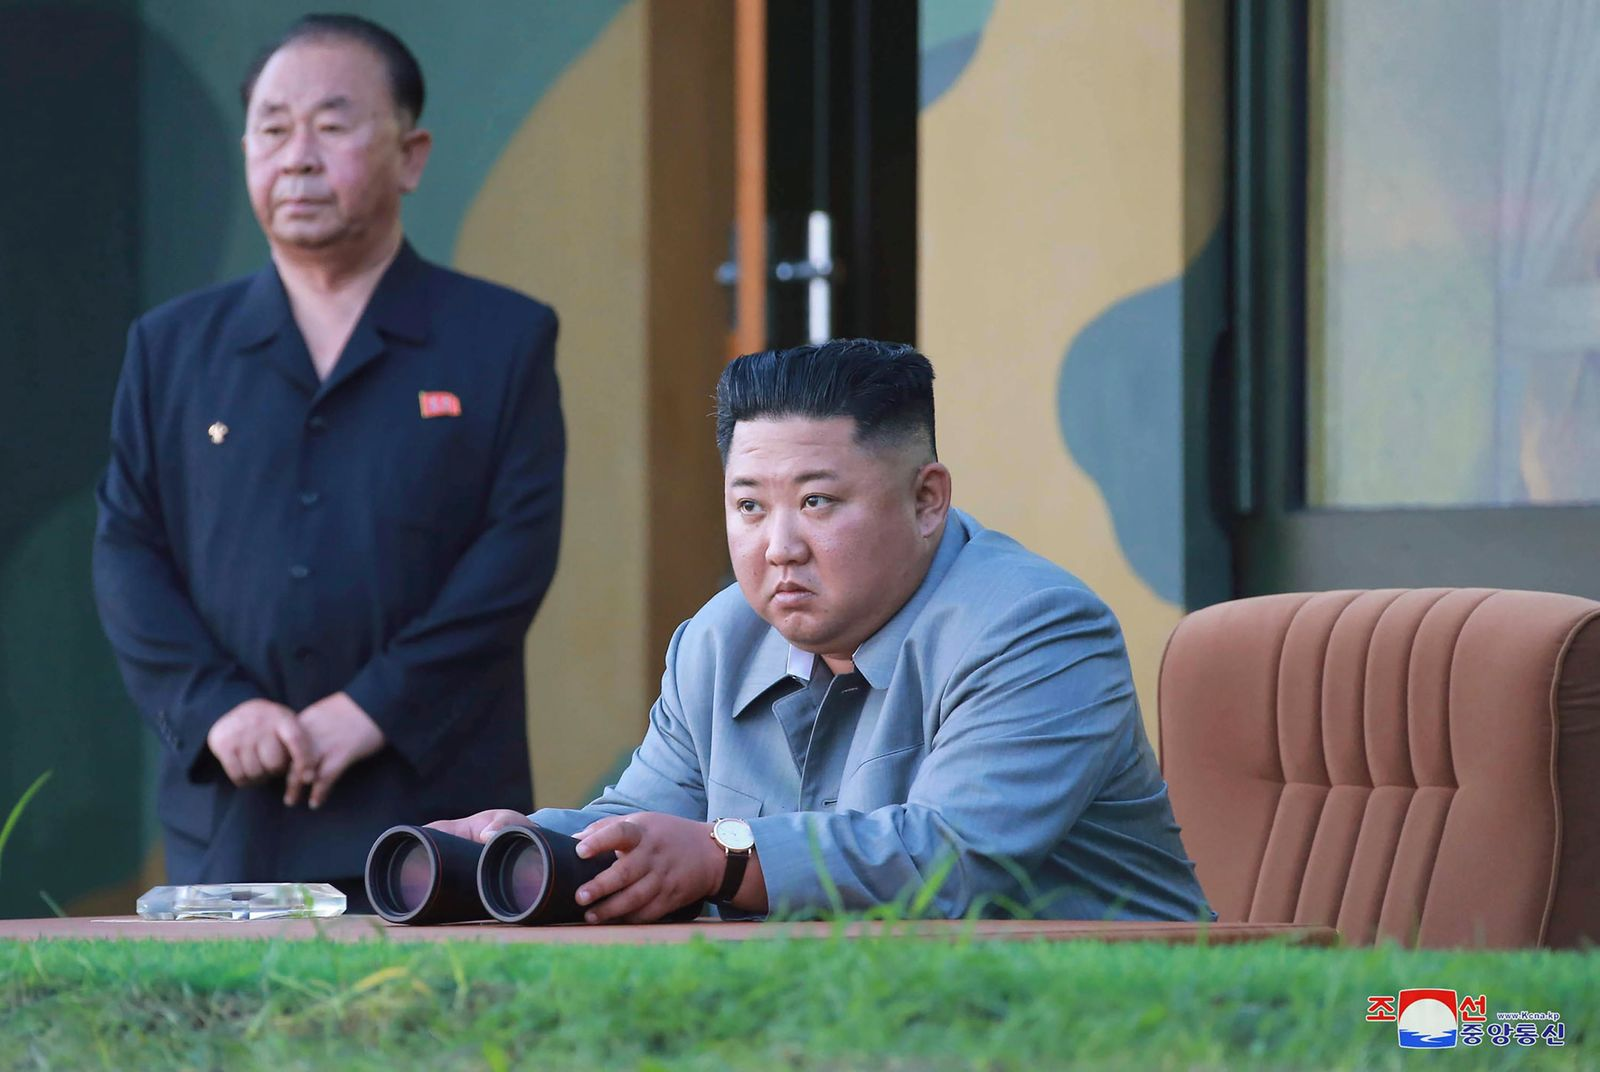 FILE - In this July 25, 2019, photo provided on Friday, July 26, 2019, by the North Korean government, North Korean leader Kim Jong Un watches a missile test in North Korea.  South Korea's military said Friday, Aug. 16, North Korea fired more projectiles into the sea to extend a recent streak of weapons tests believed to be aimed at pressuring Washington and Seoul over slow nuclear diplomacy.(Korean Central News Agency/Korea News Service via AP, File)